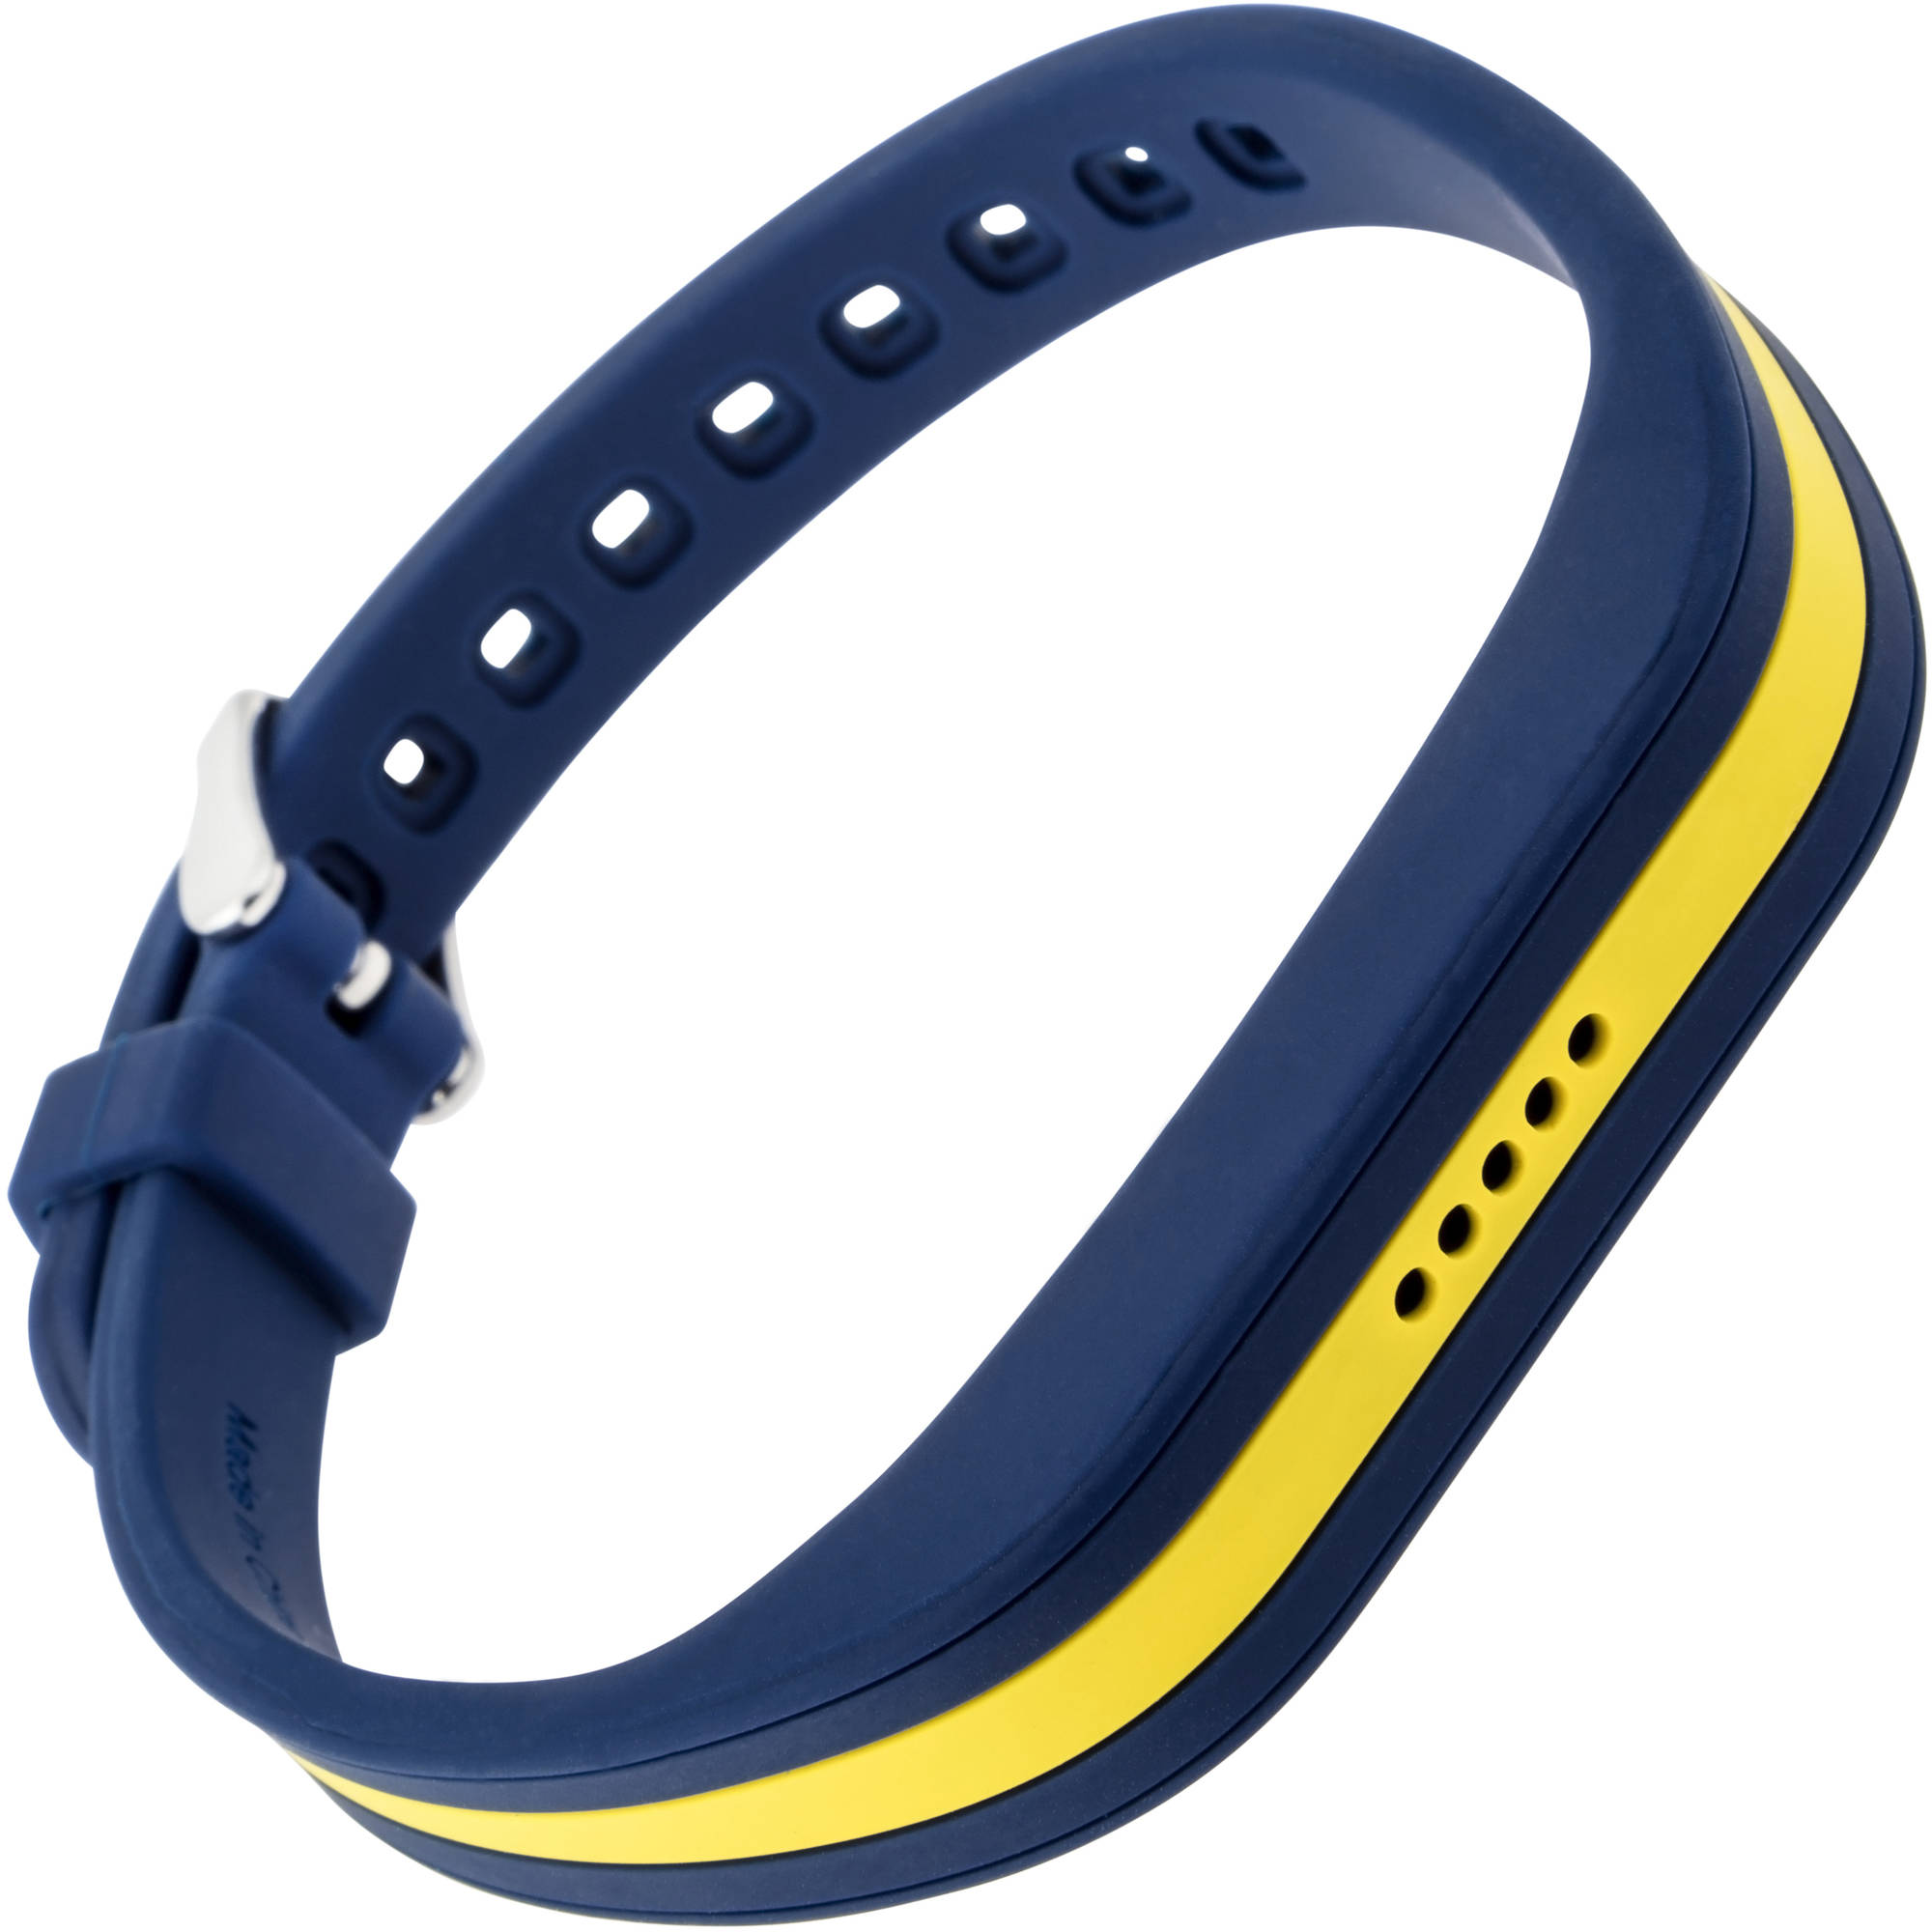 Blackweb Replacement Band with Steel Buckle for Fitbit Flex 2, Blue Yellow by Generic